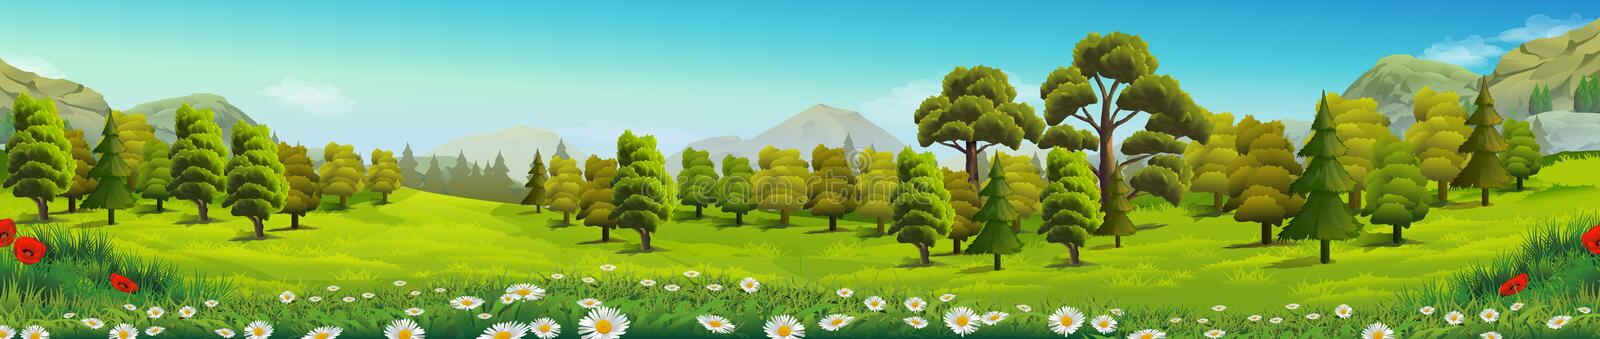 Meadow and forest nature landscape stock illustration